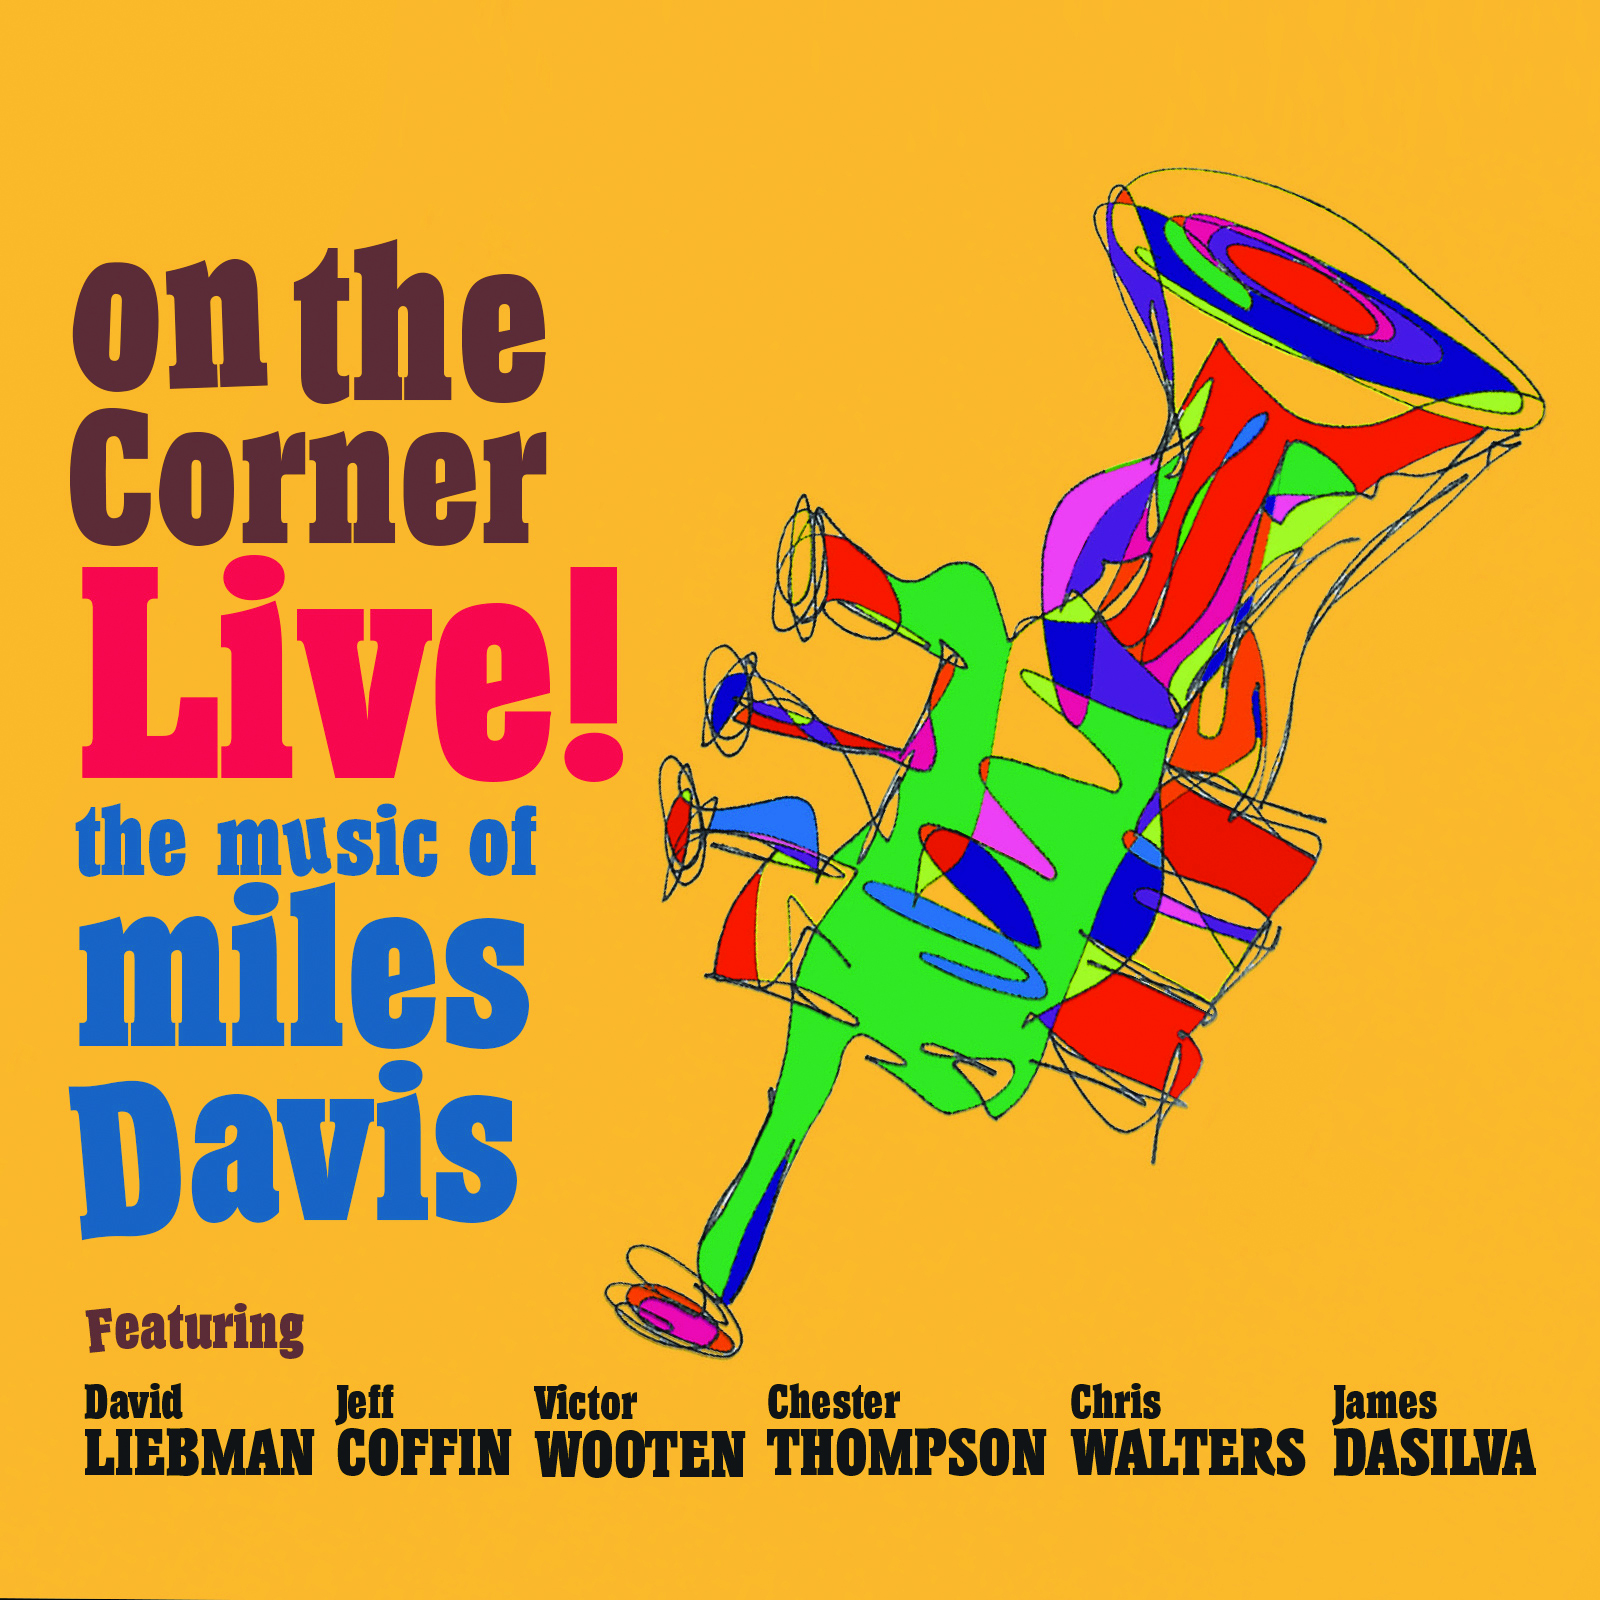 OUT TODAY: On The Corner Live featuring Dave Liebman & Jeff Coffin